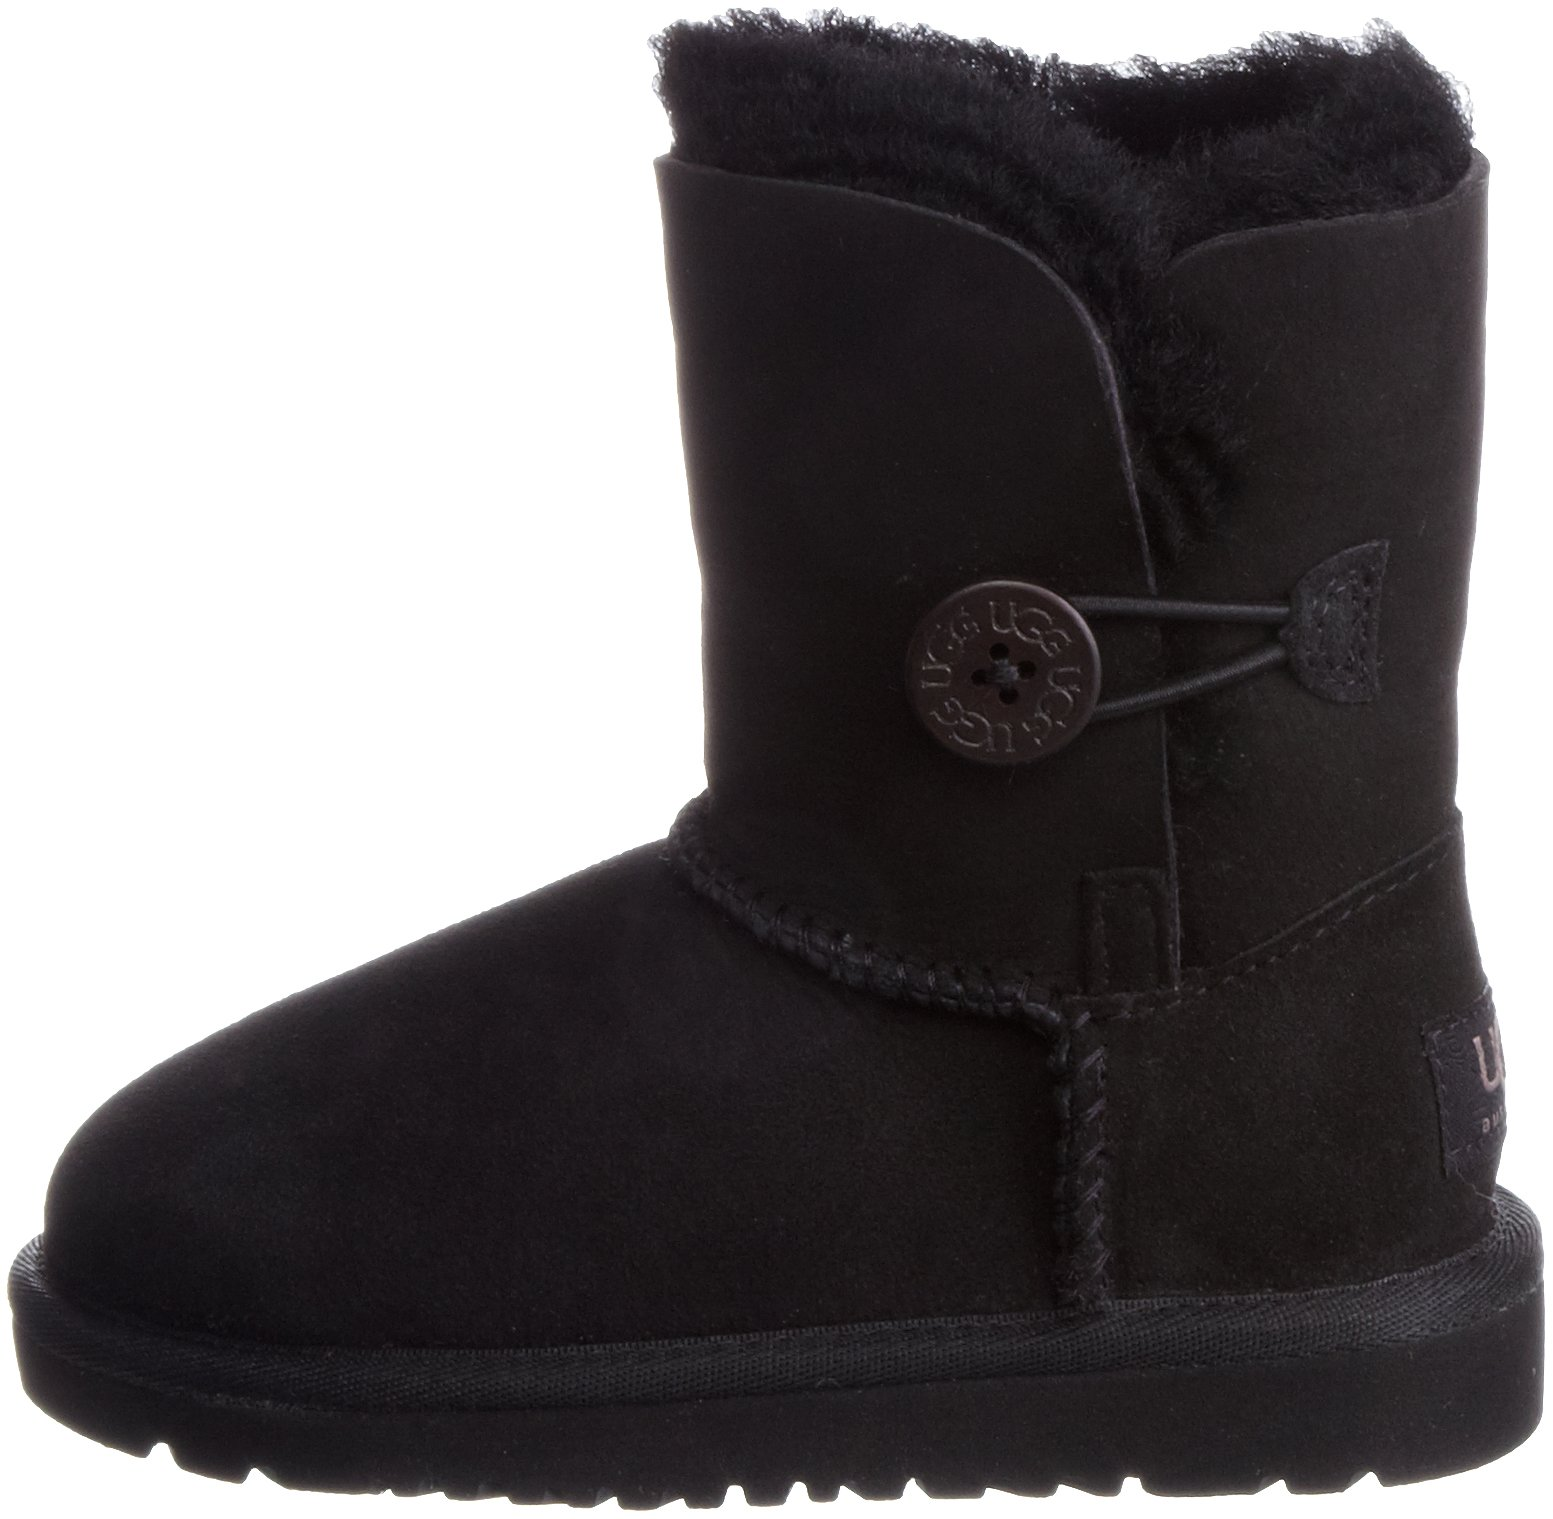 UGG Bailey Button Boot Kids, Black, 6 M US by UGG (Image #5)